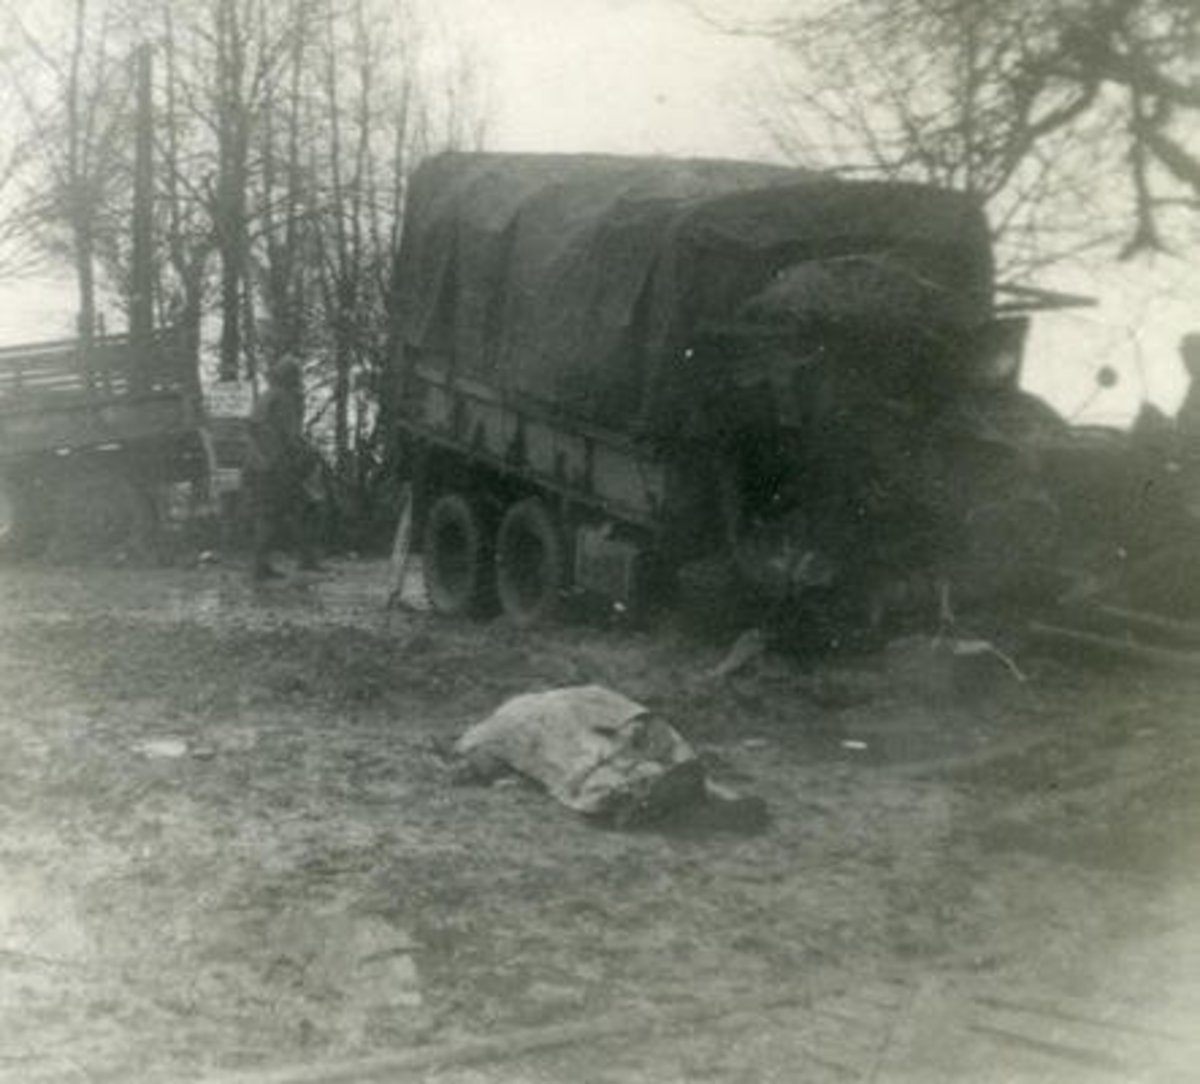 No matter what your job, it was dangerous - Artillery battalion mess sergeant lies dead after a German barrage, April 1945.